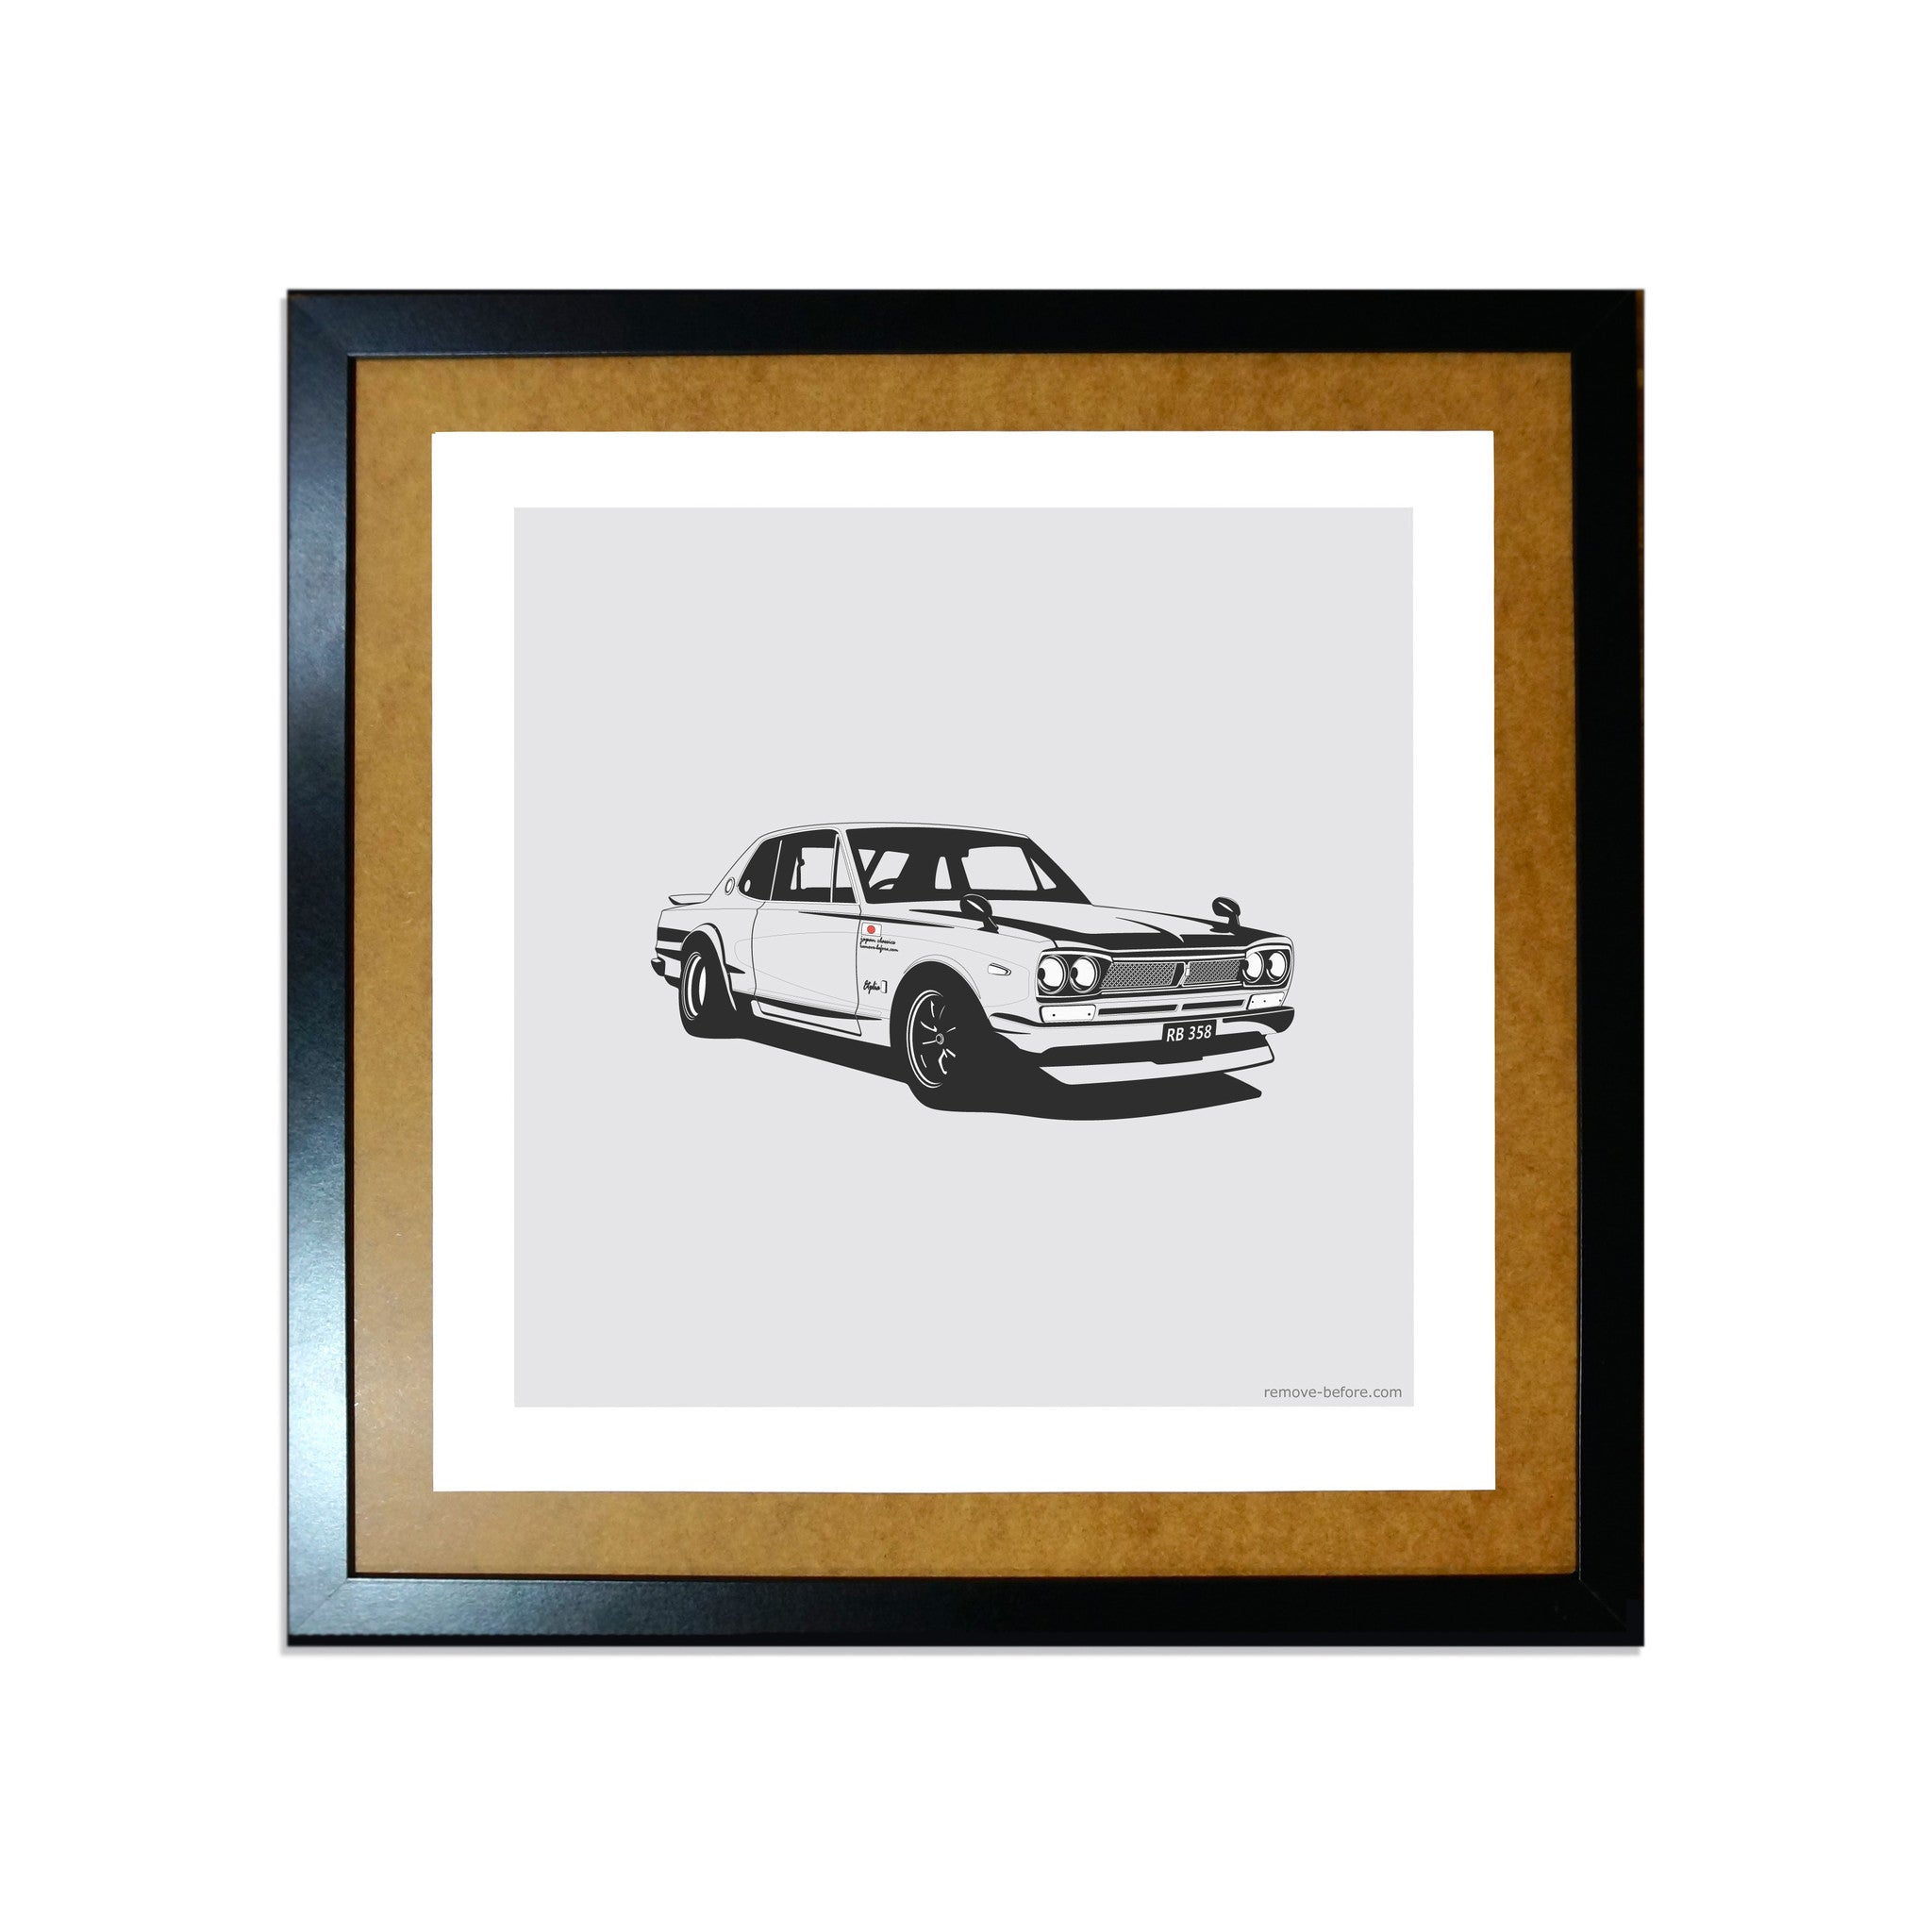 Remove-Before Limited Edition Classic Car Print - Nissan KPGC10 Car Artwork